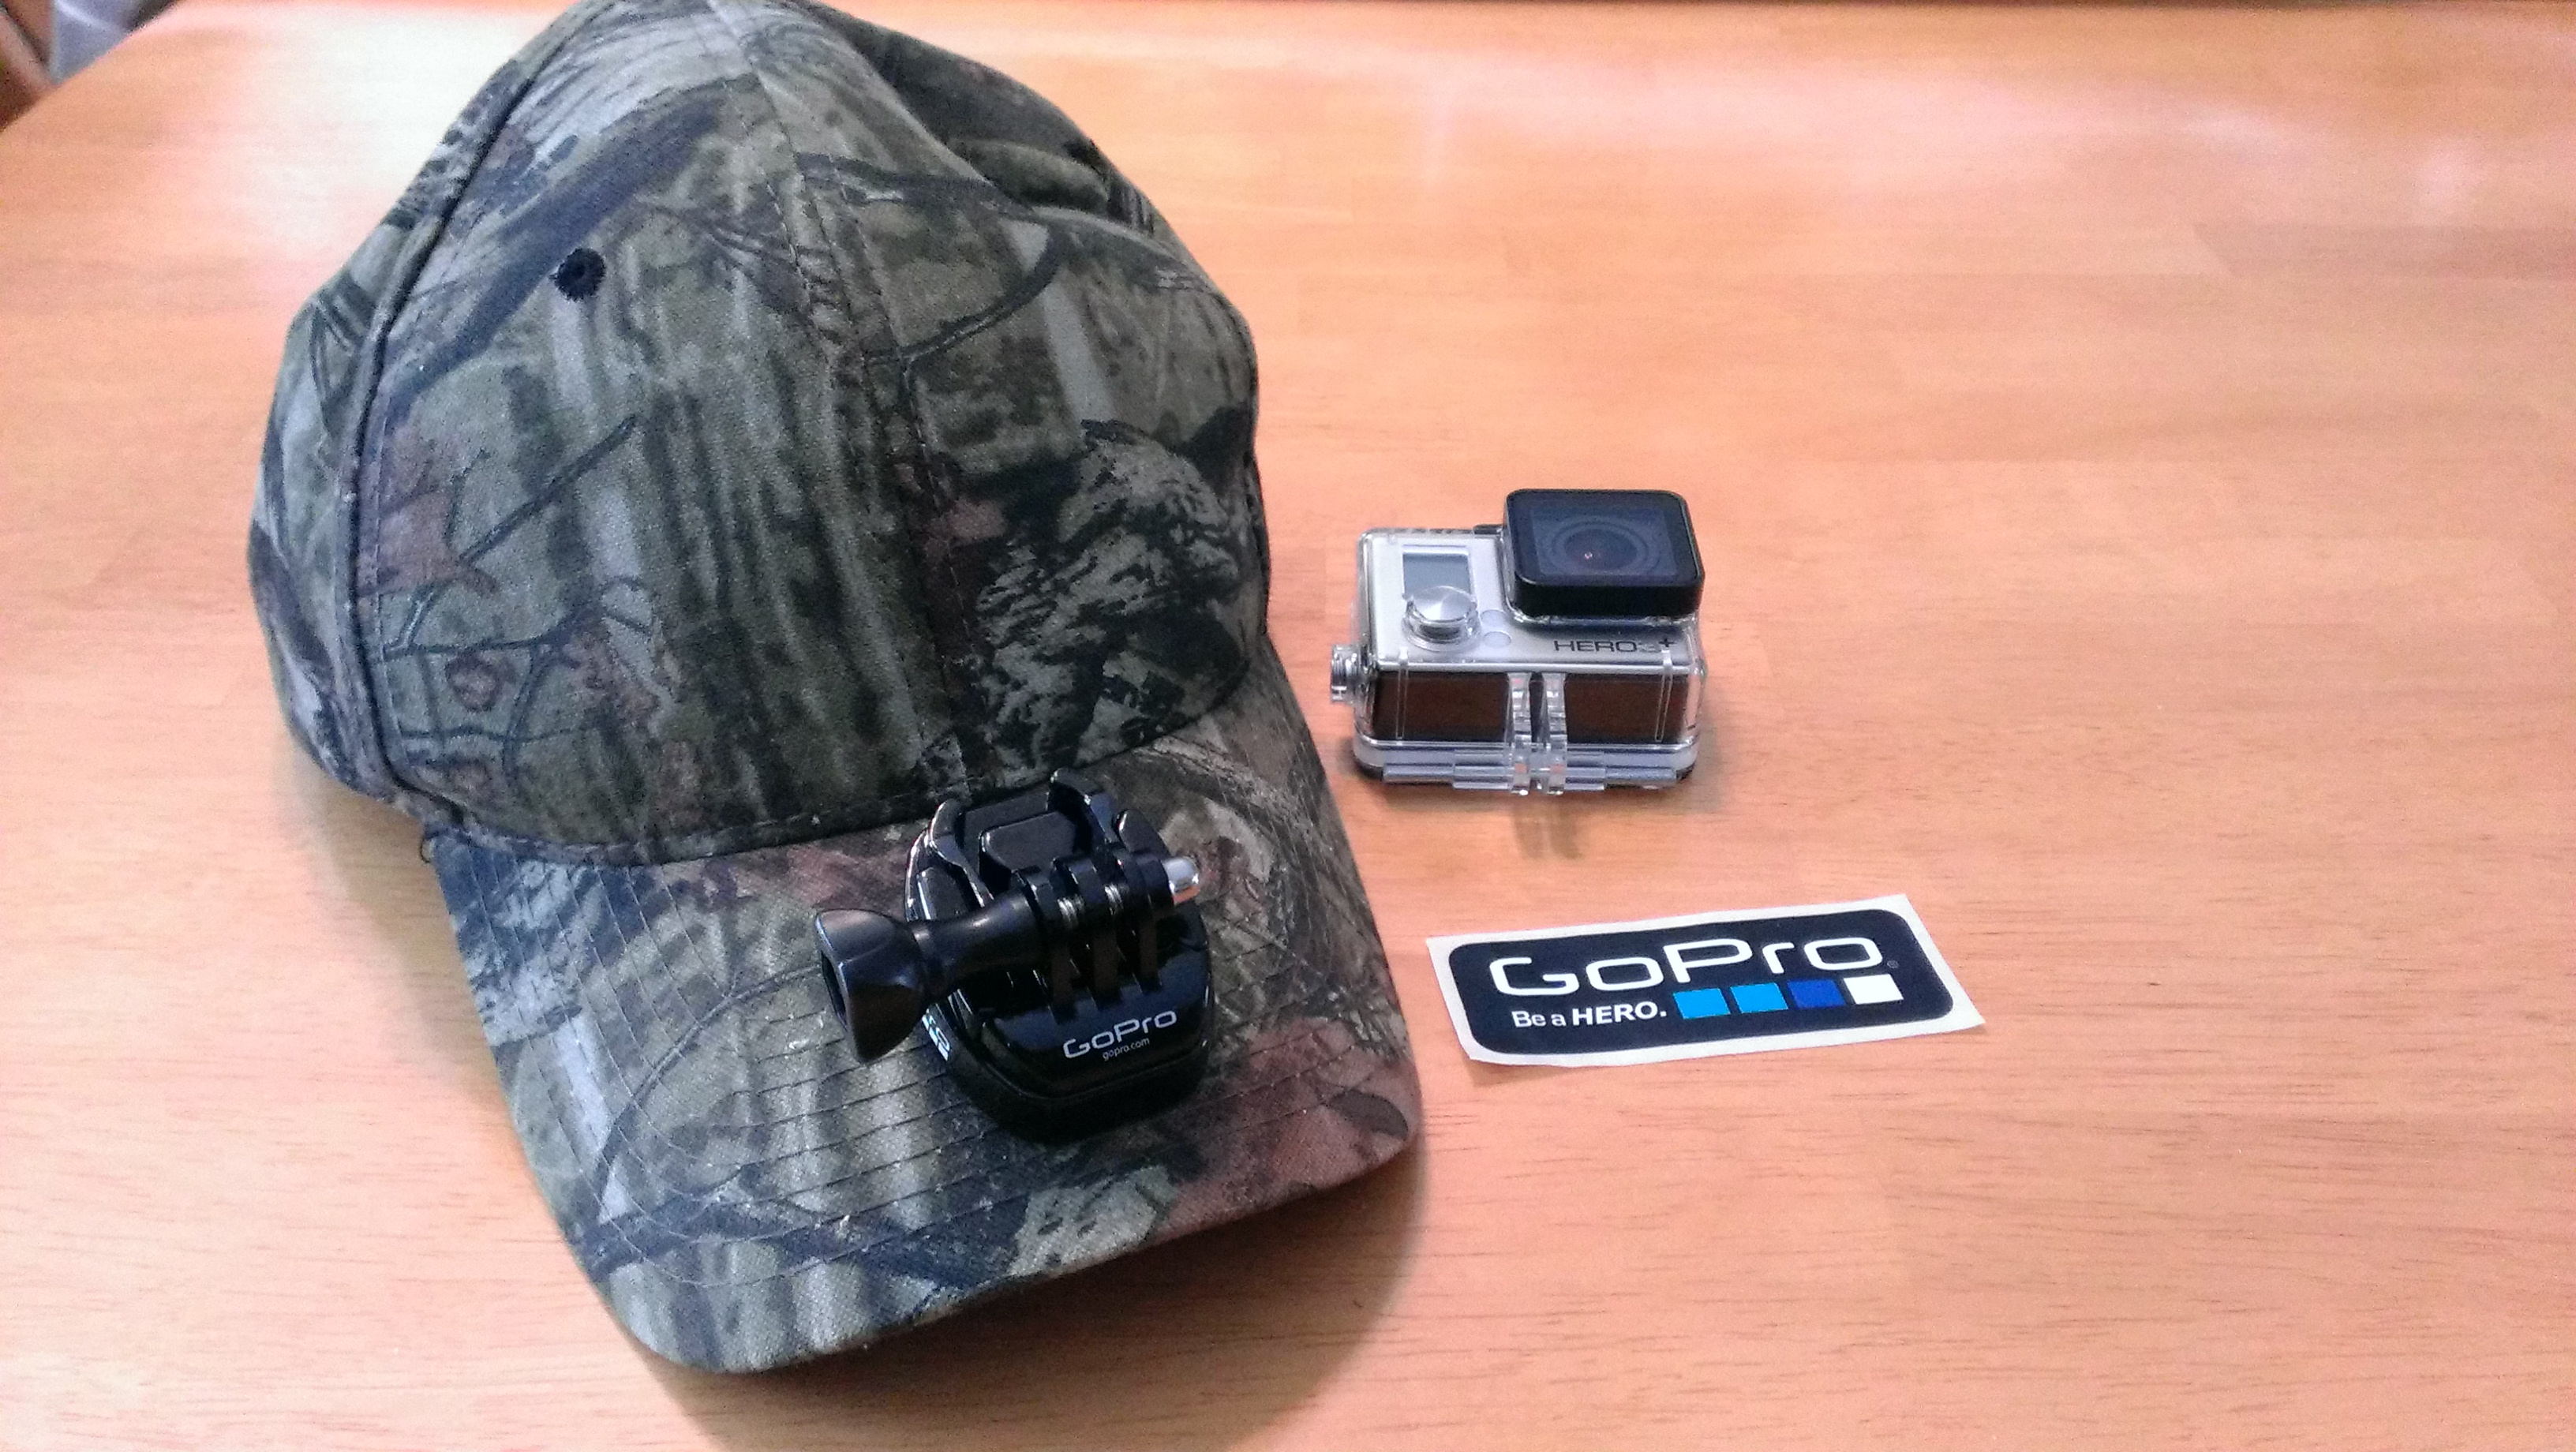 Simply thread the GoPro tripod mount and ensure a tight fasten!